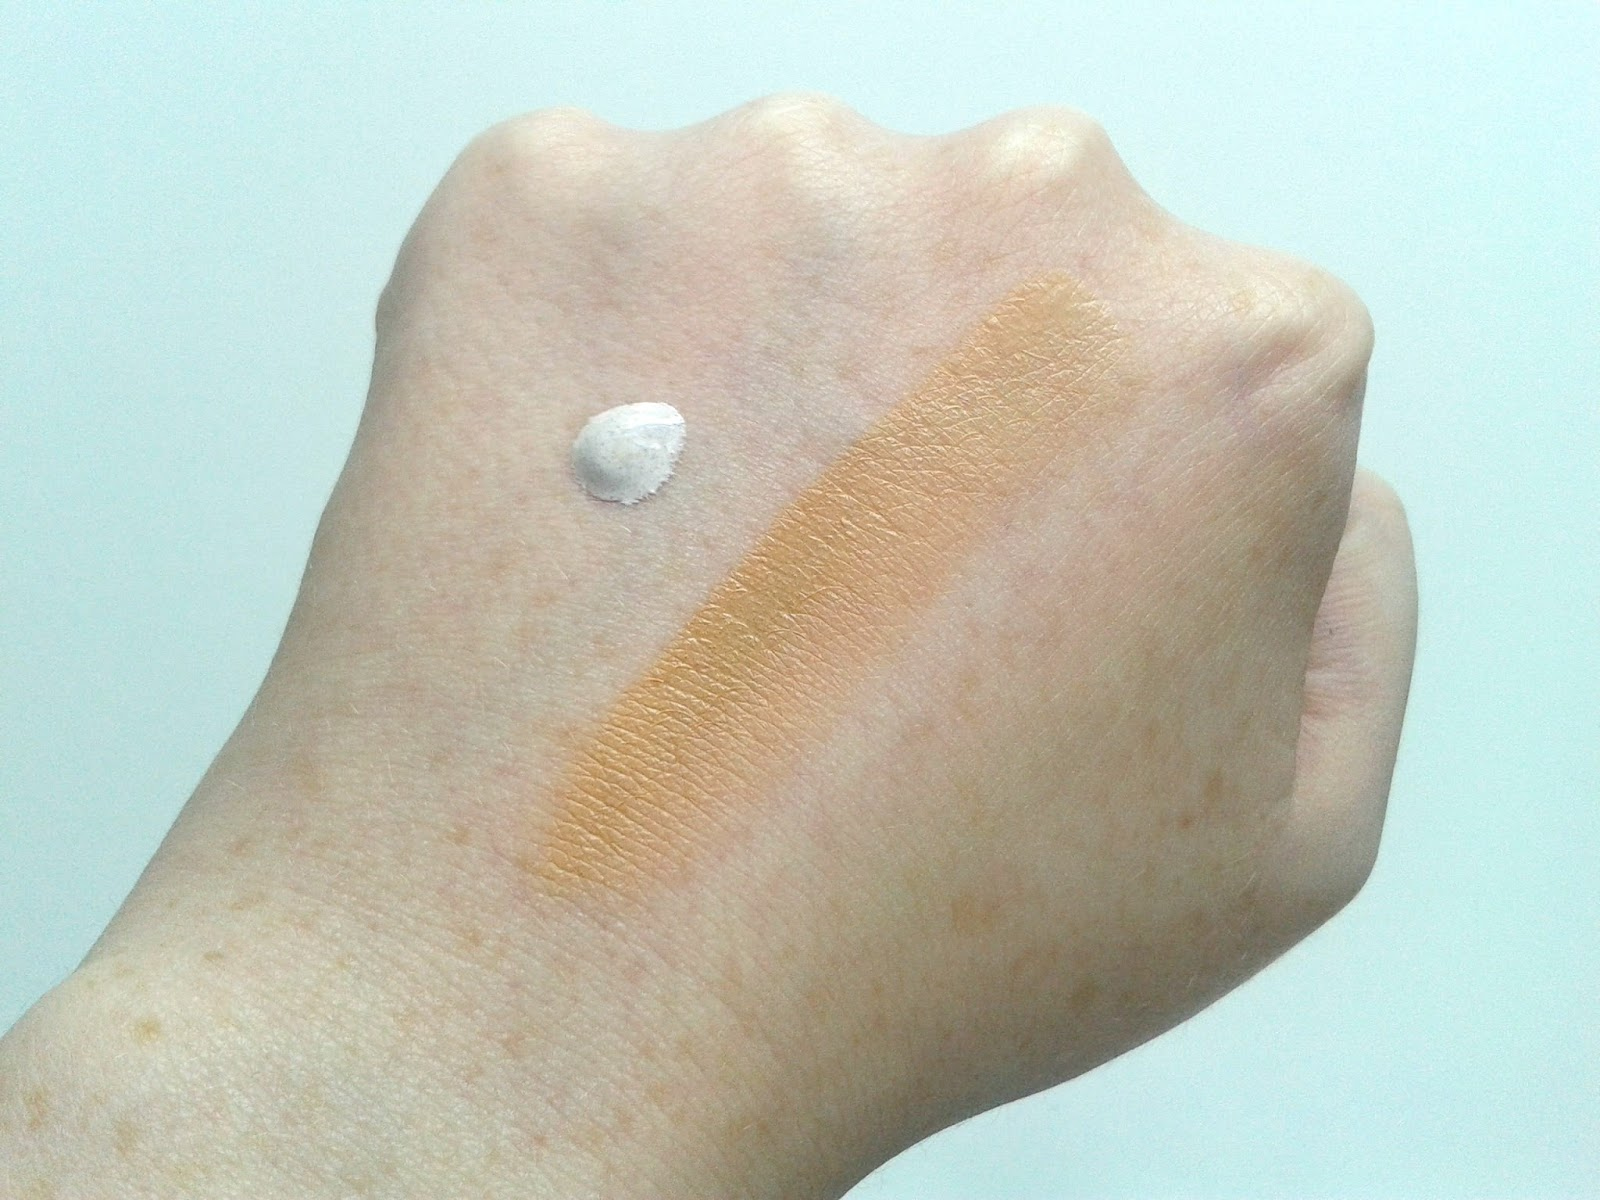 L'Oreal Nude Magique BB Cream Light Beauty Review Swatches